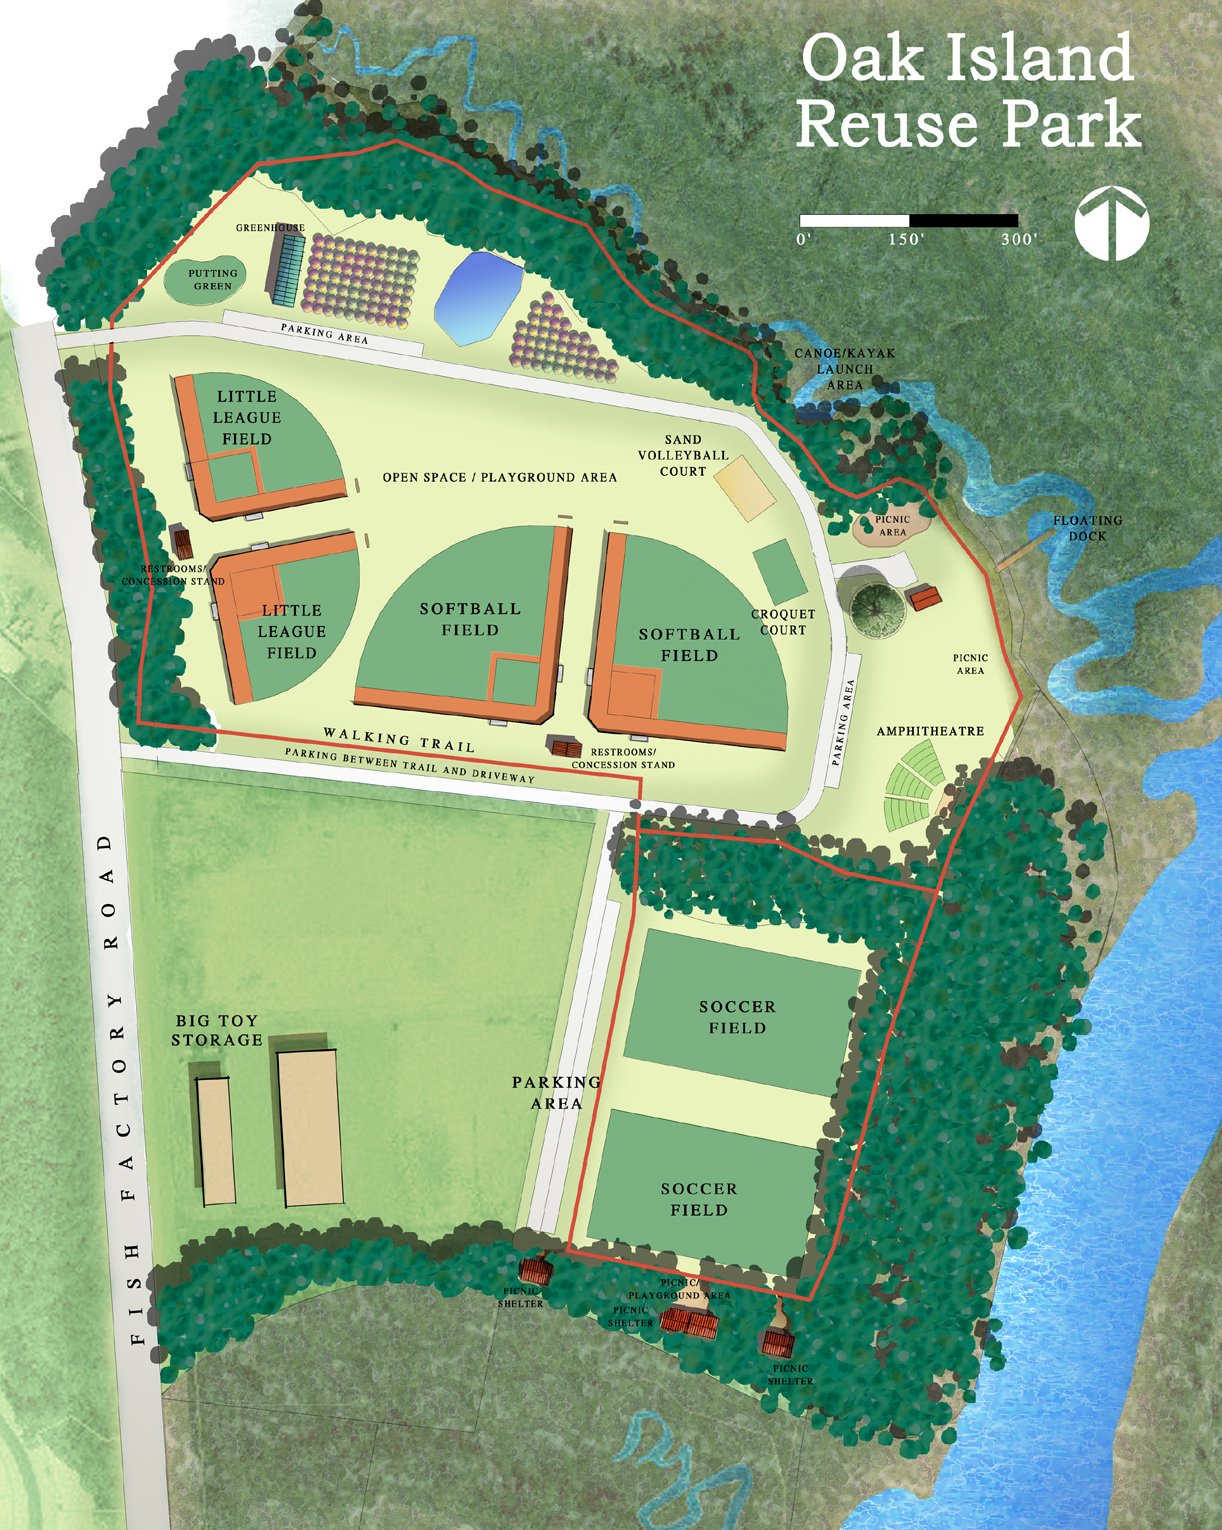 Reference Site Plan